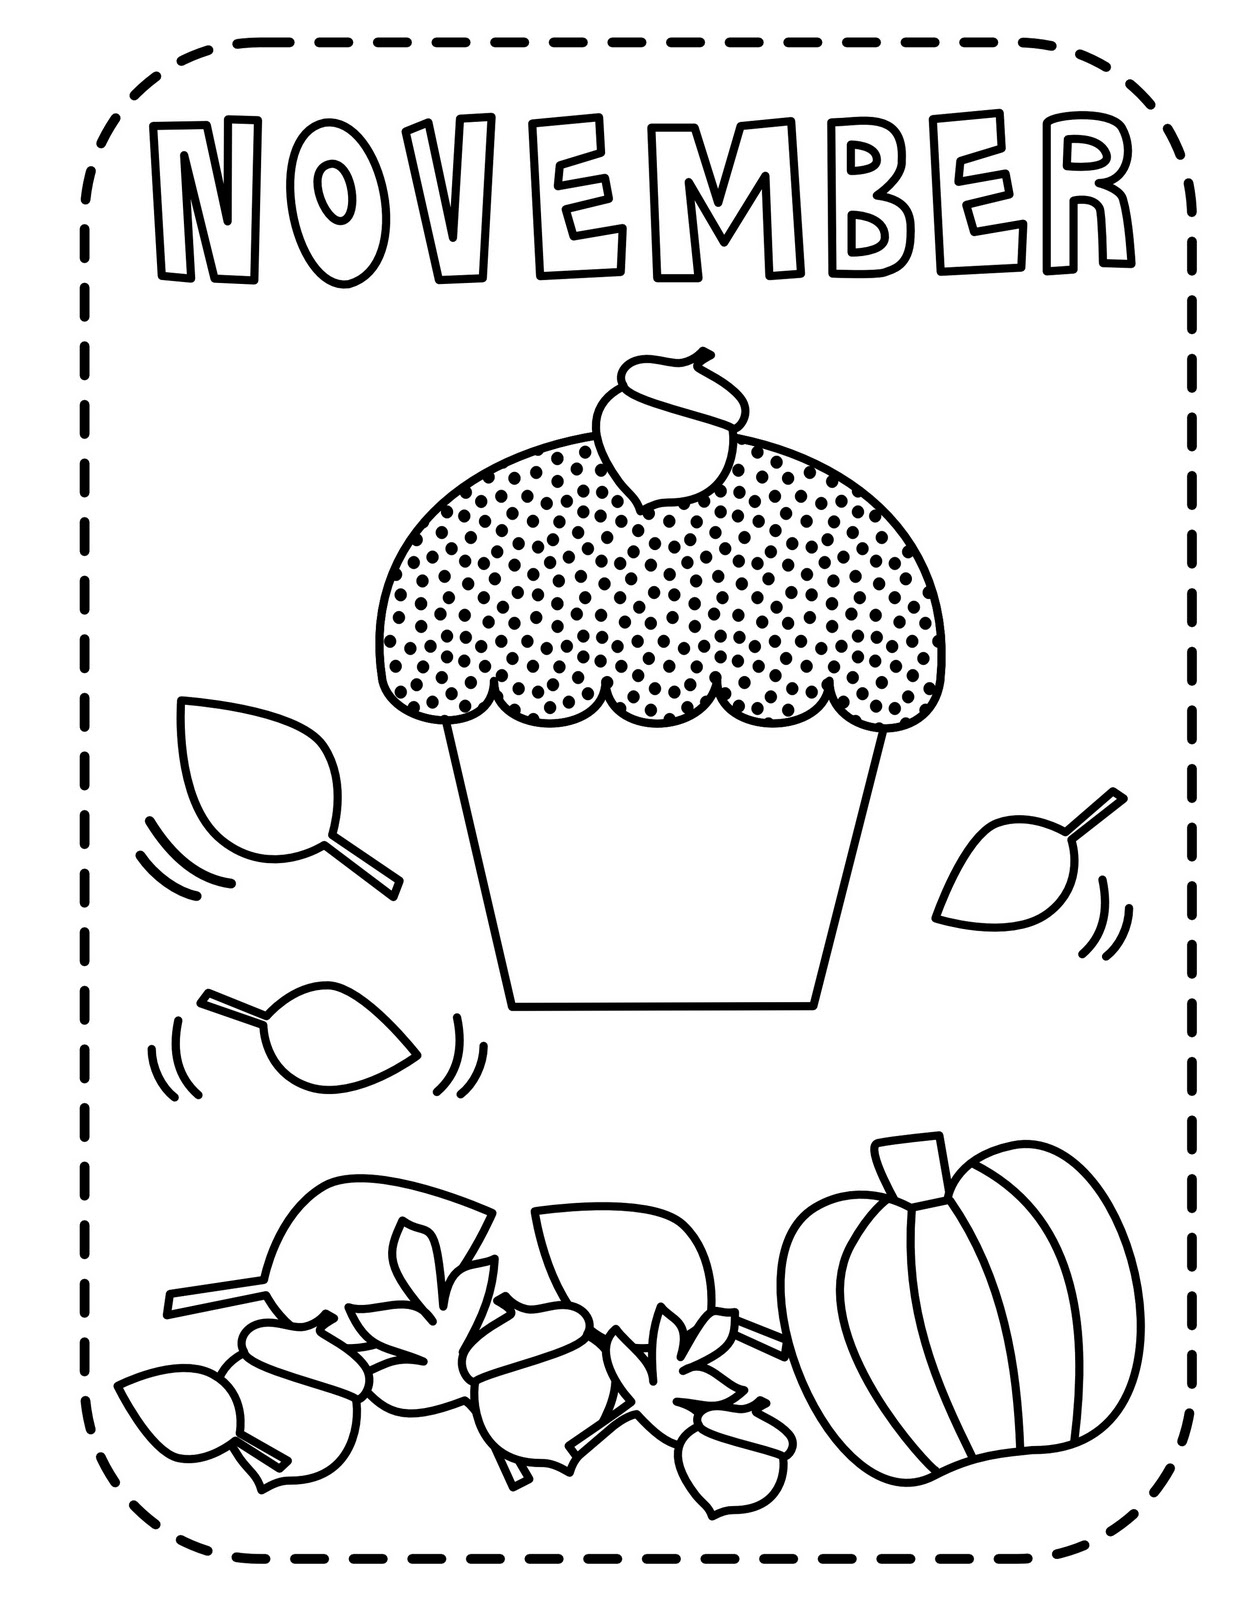 november coloring pages - photo#3